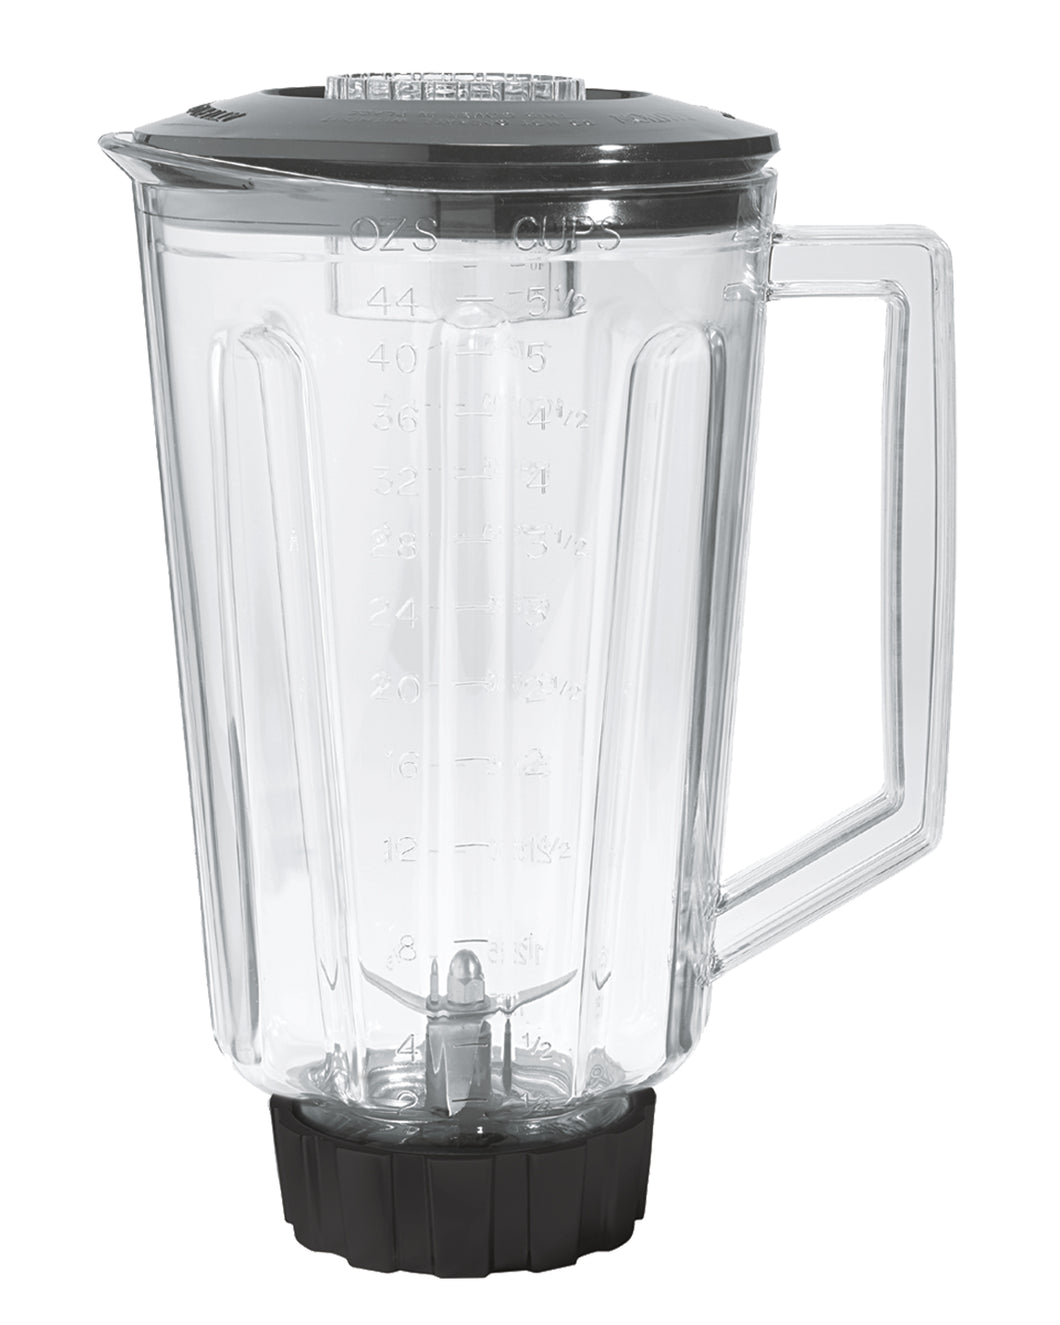 Hamilton Beach Commercial 6126-HBB908 44oz / 1.25L Polycarbonate Container for HBB908